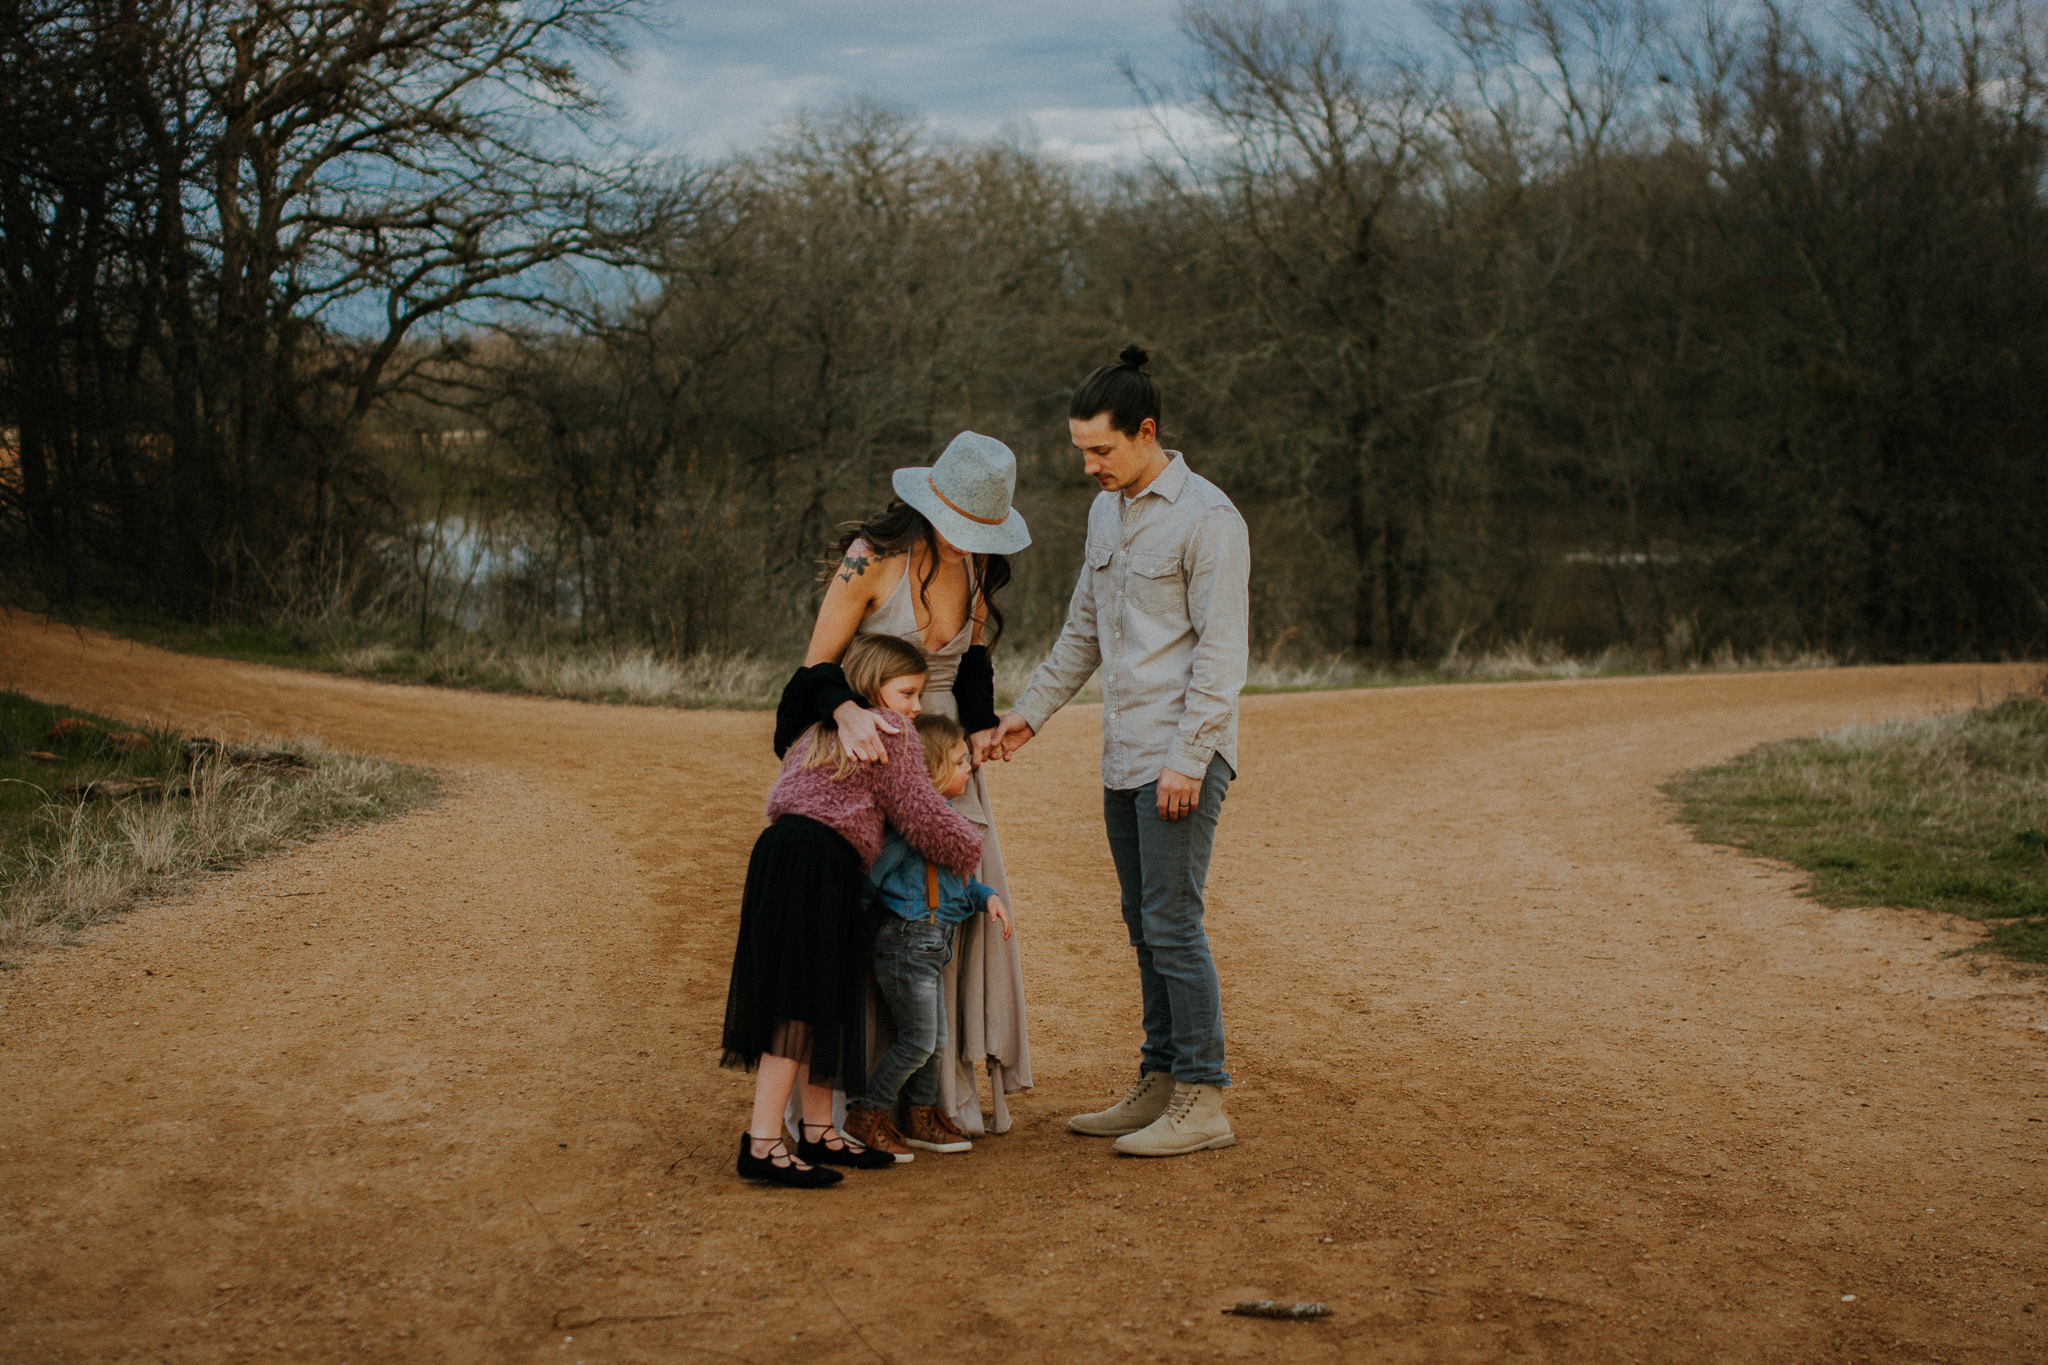 jessi_marie_photography_dallas_fort_worth_family_photographer_-30.jpg